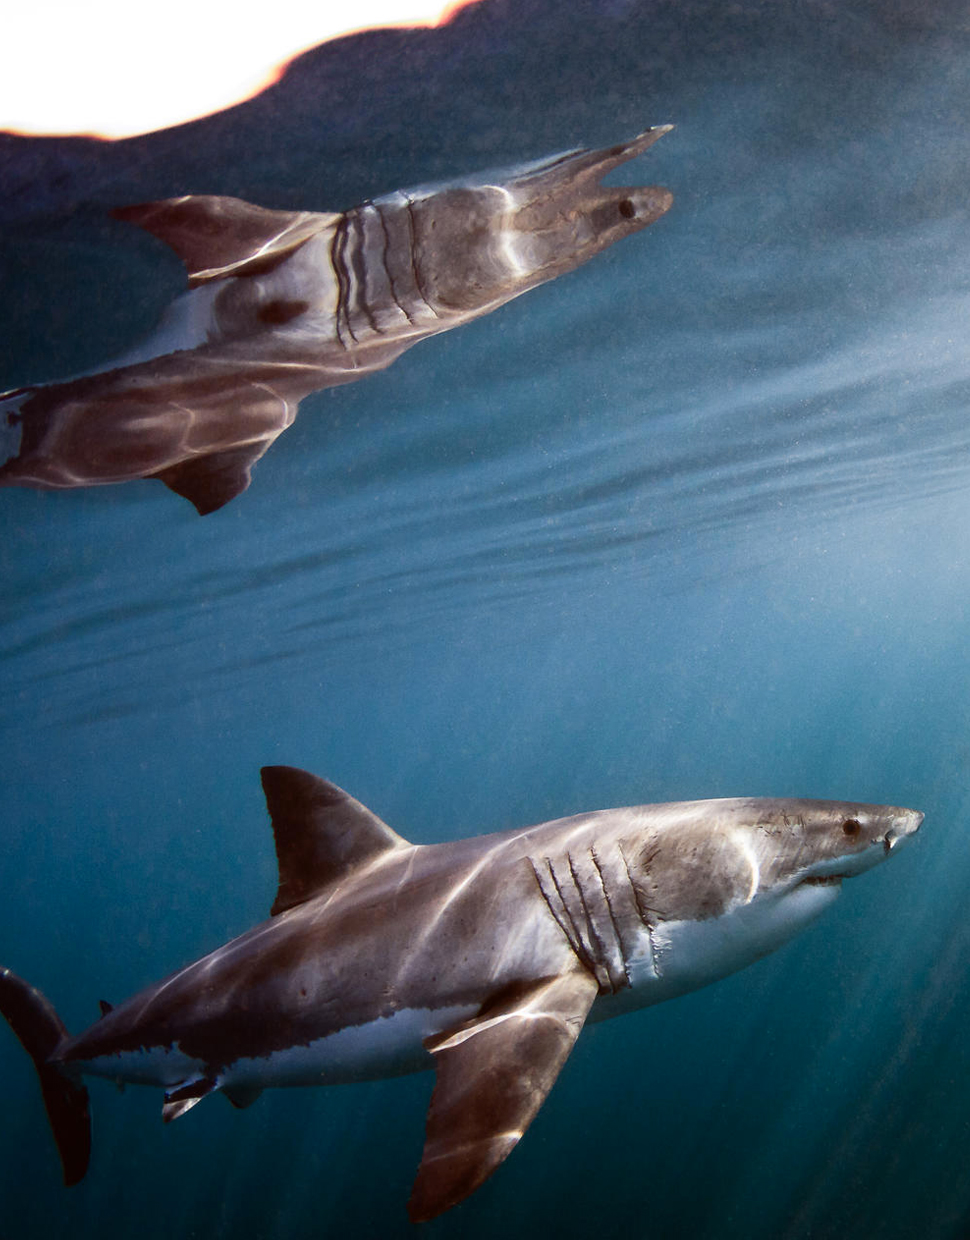 GREAT-WHITES-&-GREAT-WINES-SHARK-CAGE-DIVING-&-WINE-TASTING.jpg